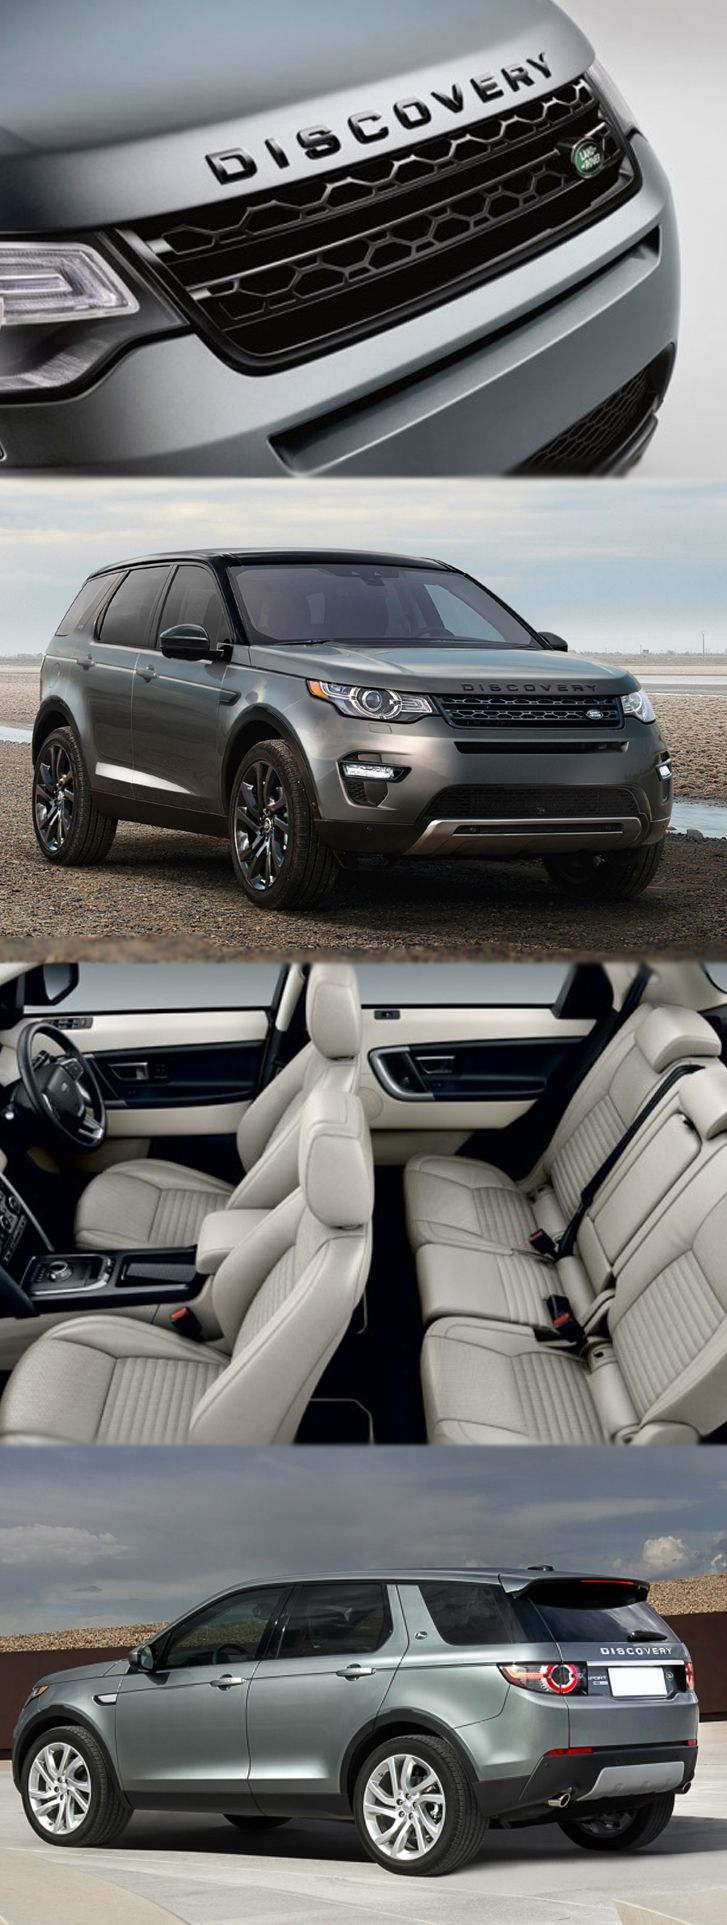 The discovery sport family suv that never forgets for more detail please visit https discovery carland rover